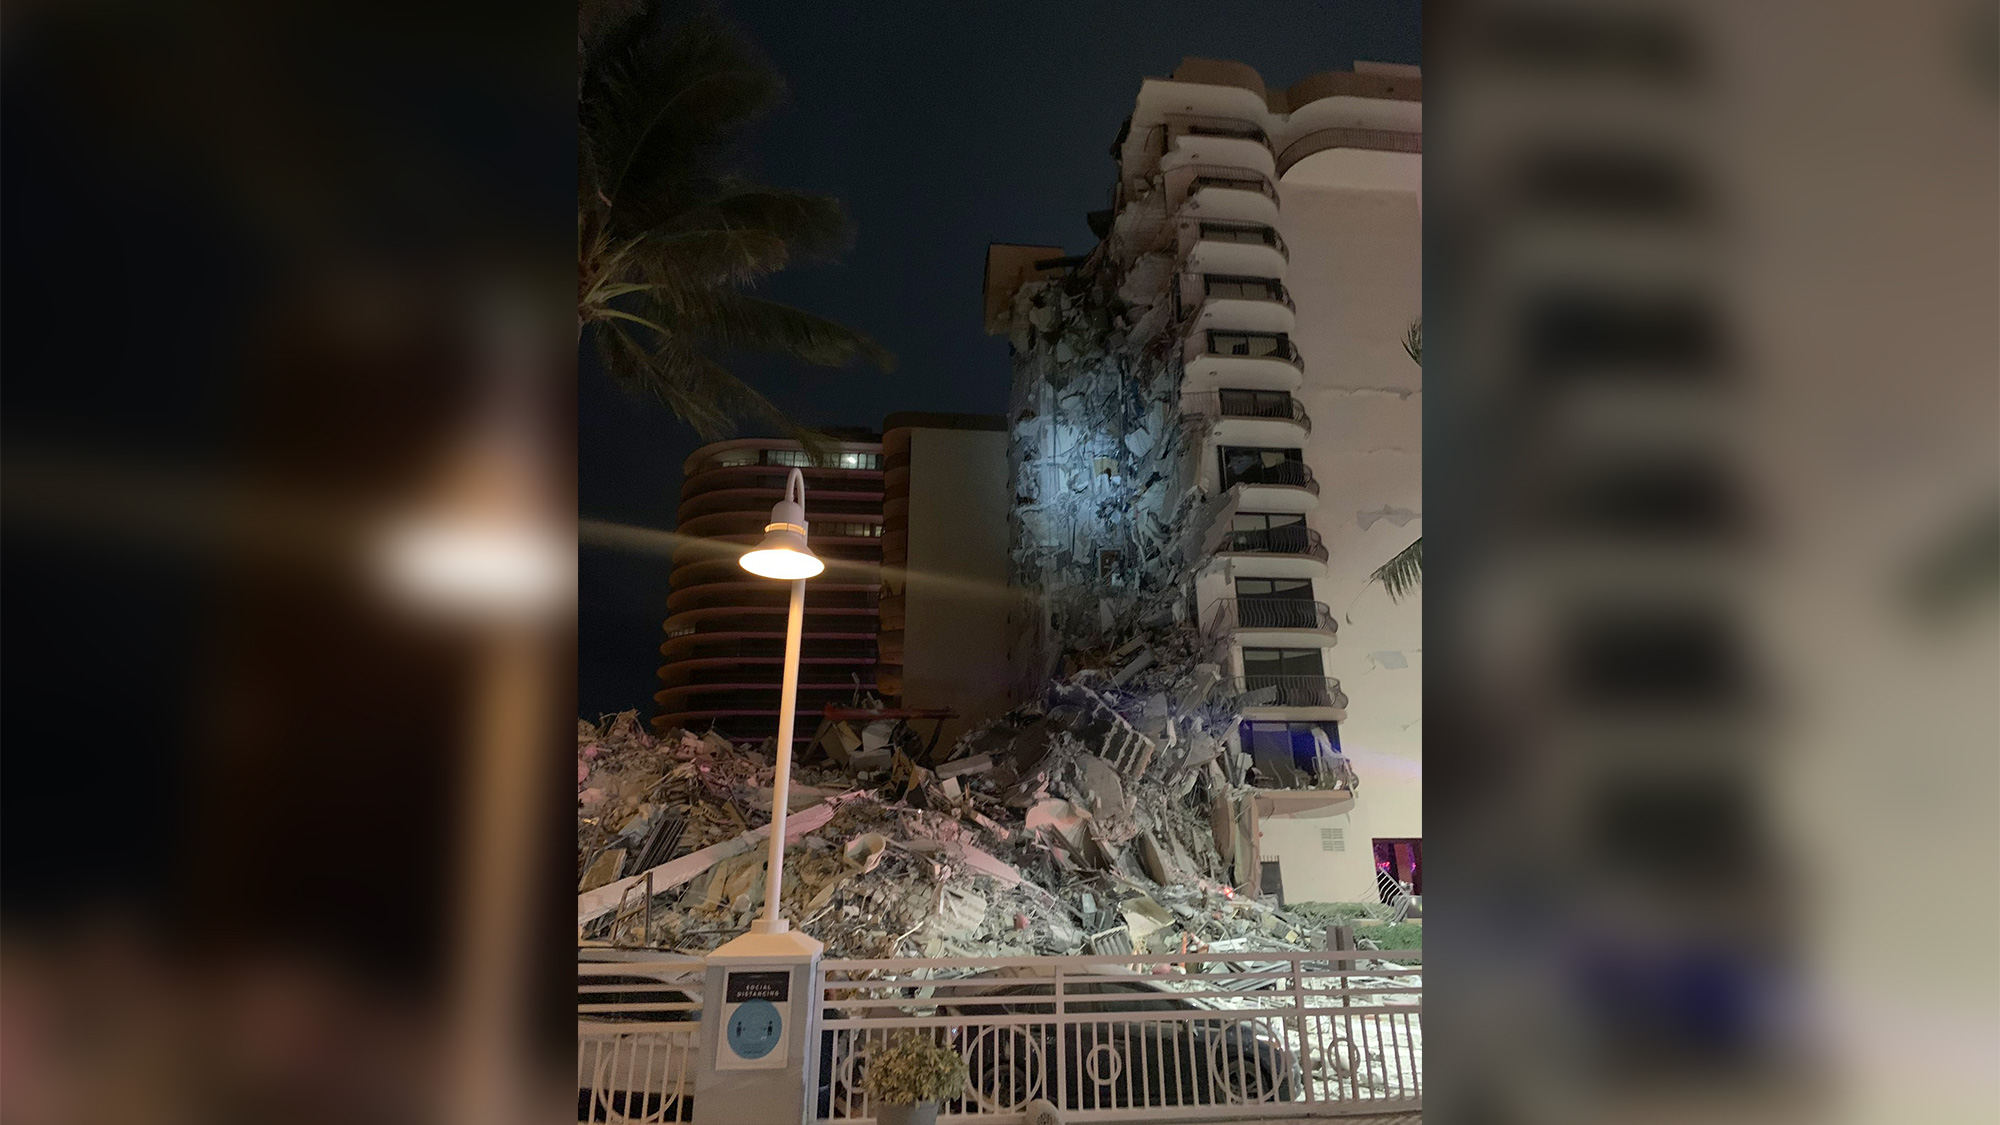 A multistory residential building in Surfside, Florida, has partially collapsed, authorities say